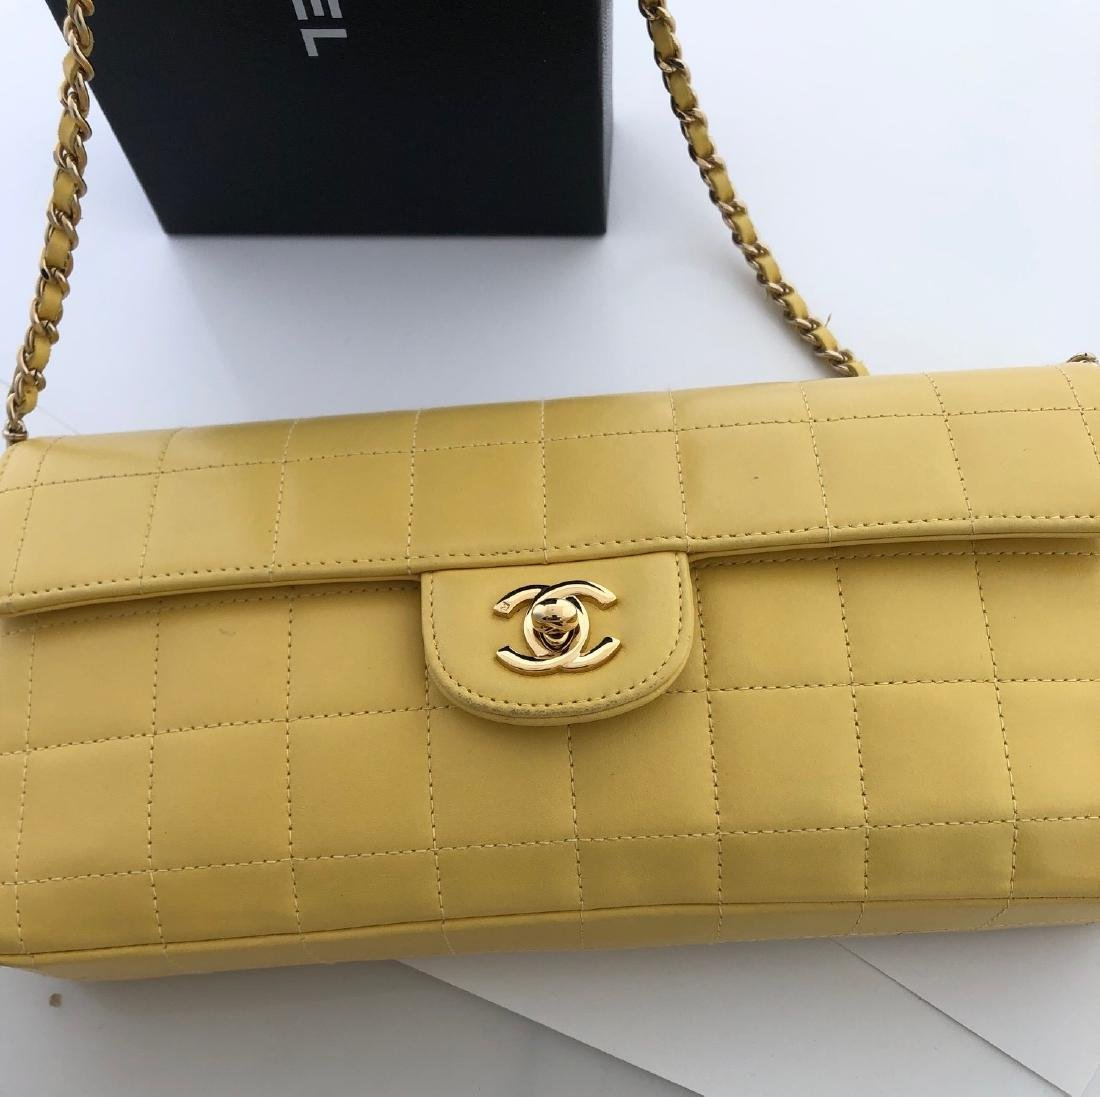 Chanel East West Quilted Chocolate Bar Flap